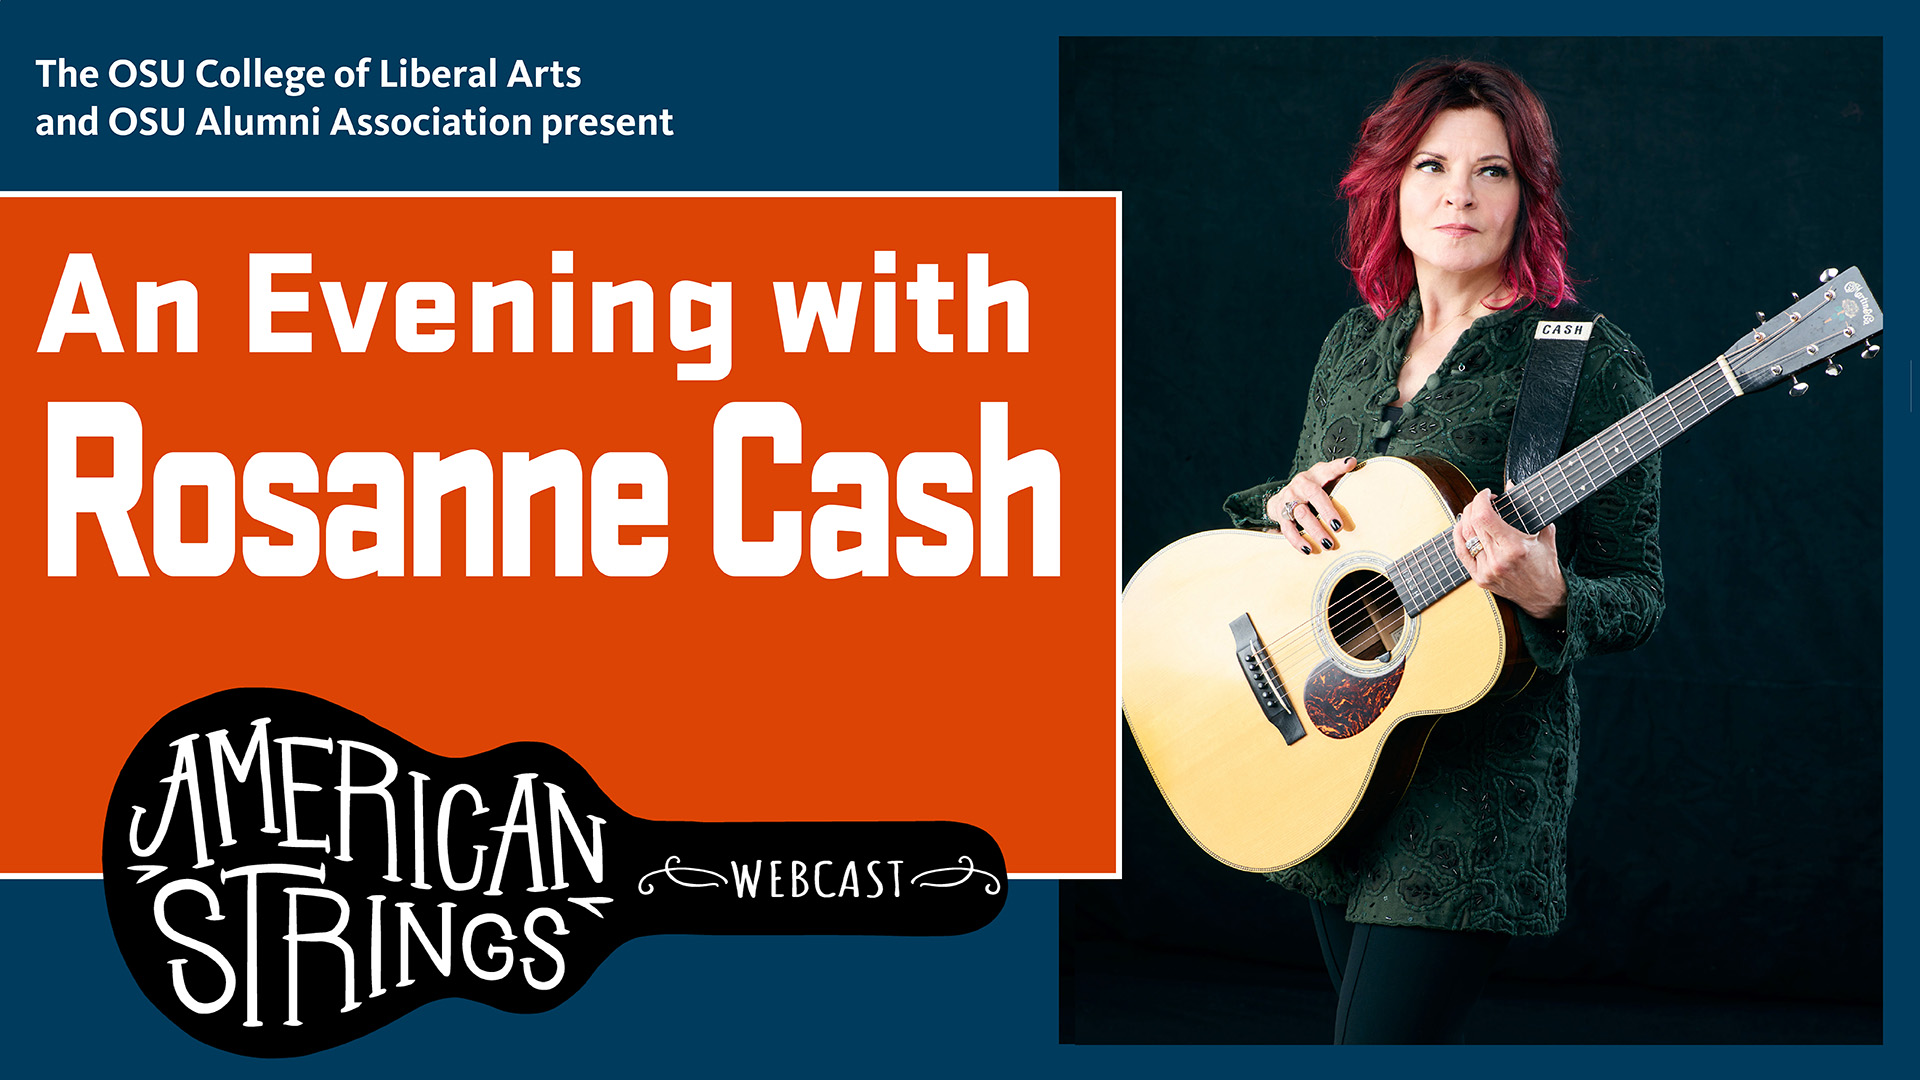 An Evening with Roseanne Cash